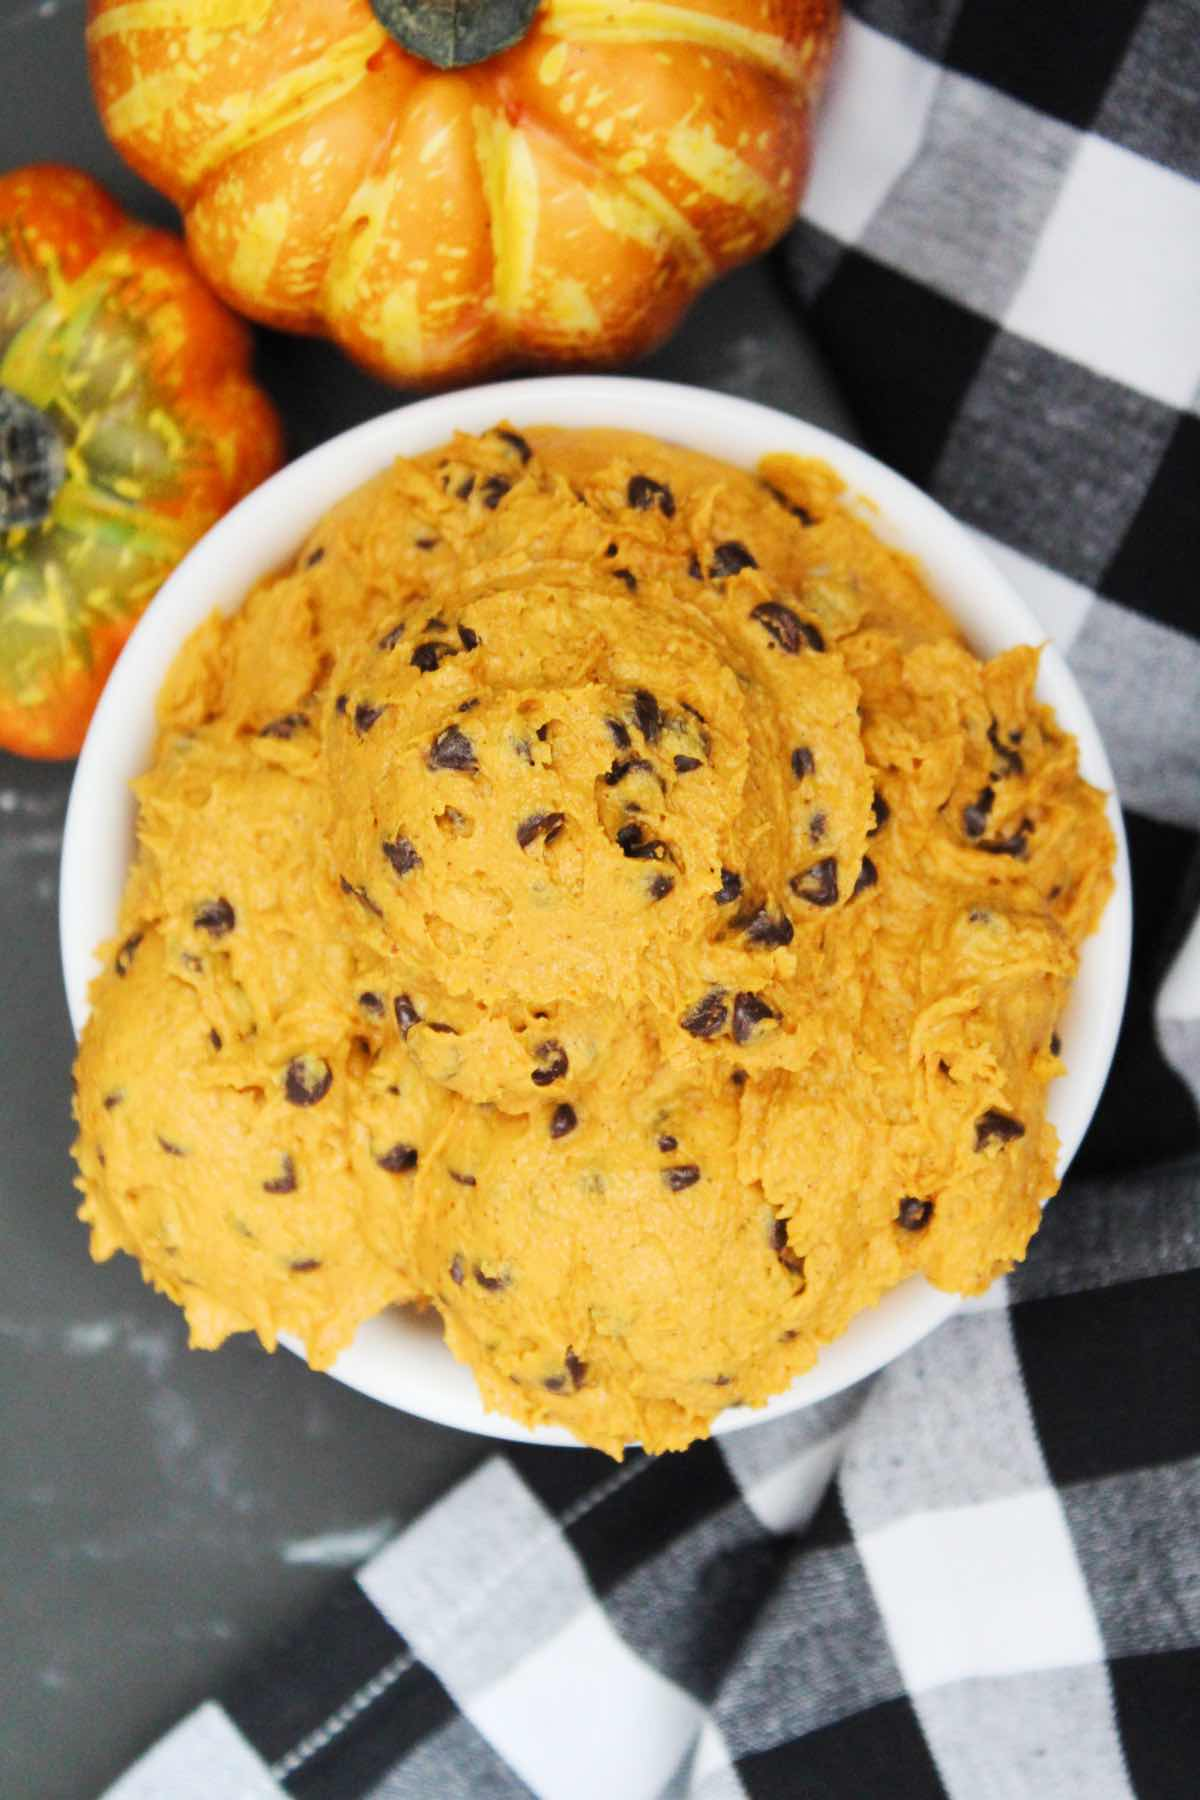 All you need are a few simple ingredients like flour, butter, brown sugar, pumpkin pie spice, pumpkin puree, vanilla extract and chocolate chips.